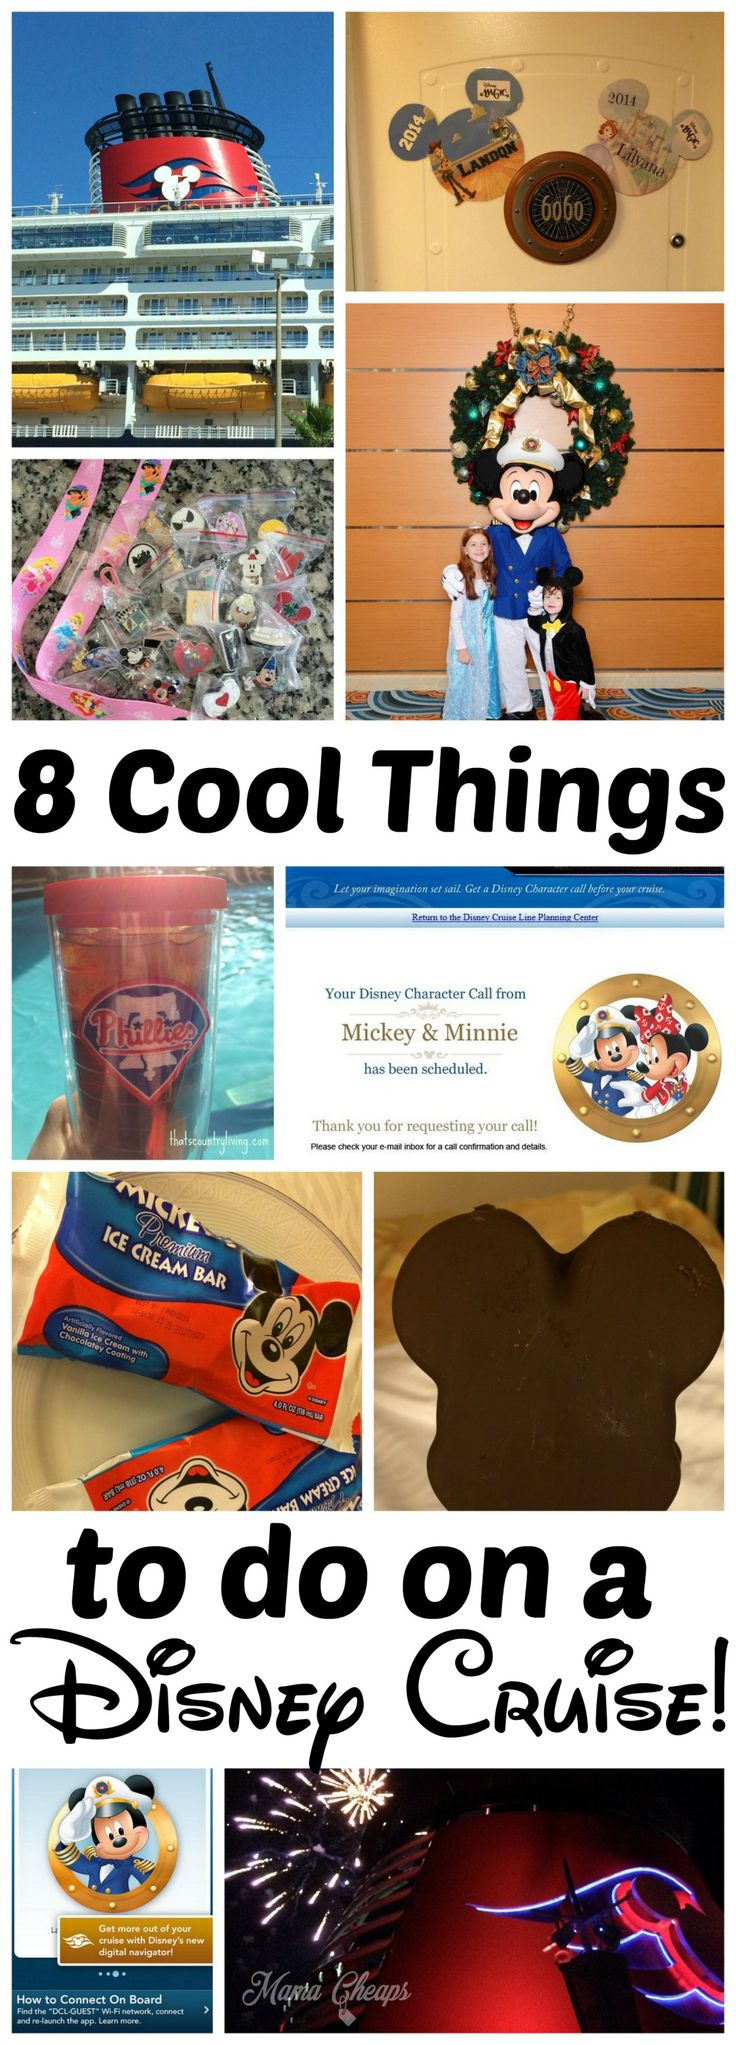 8 Cool Things to Do on a Disney Cruise